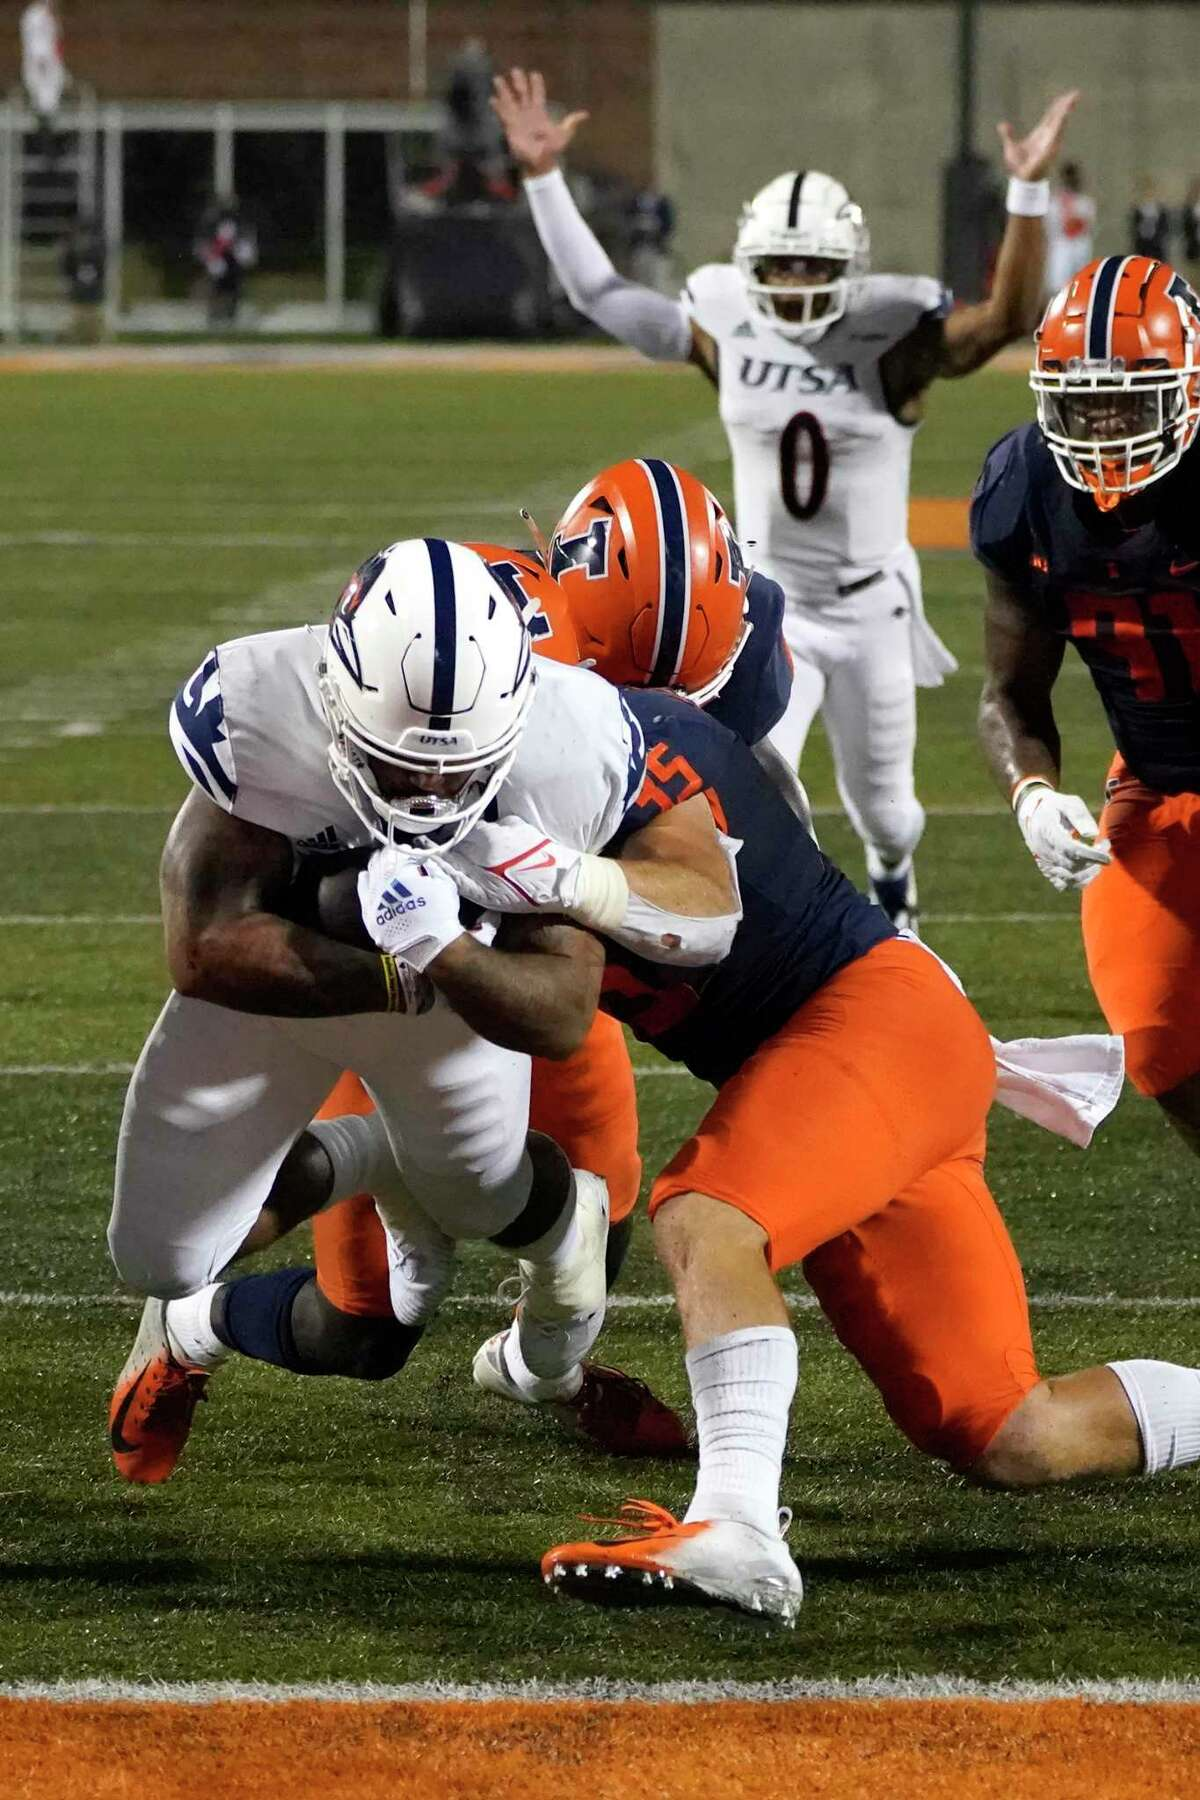 UTSA running back Brenden Brady, left, scores as Illinois linebacker Jake Hansen (35) defends during the first half of an NCAA college football game Saturday, Sept. 4, 2021, in Champaign, Ill. (AP Photo/Charles Rex Arbogast)